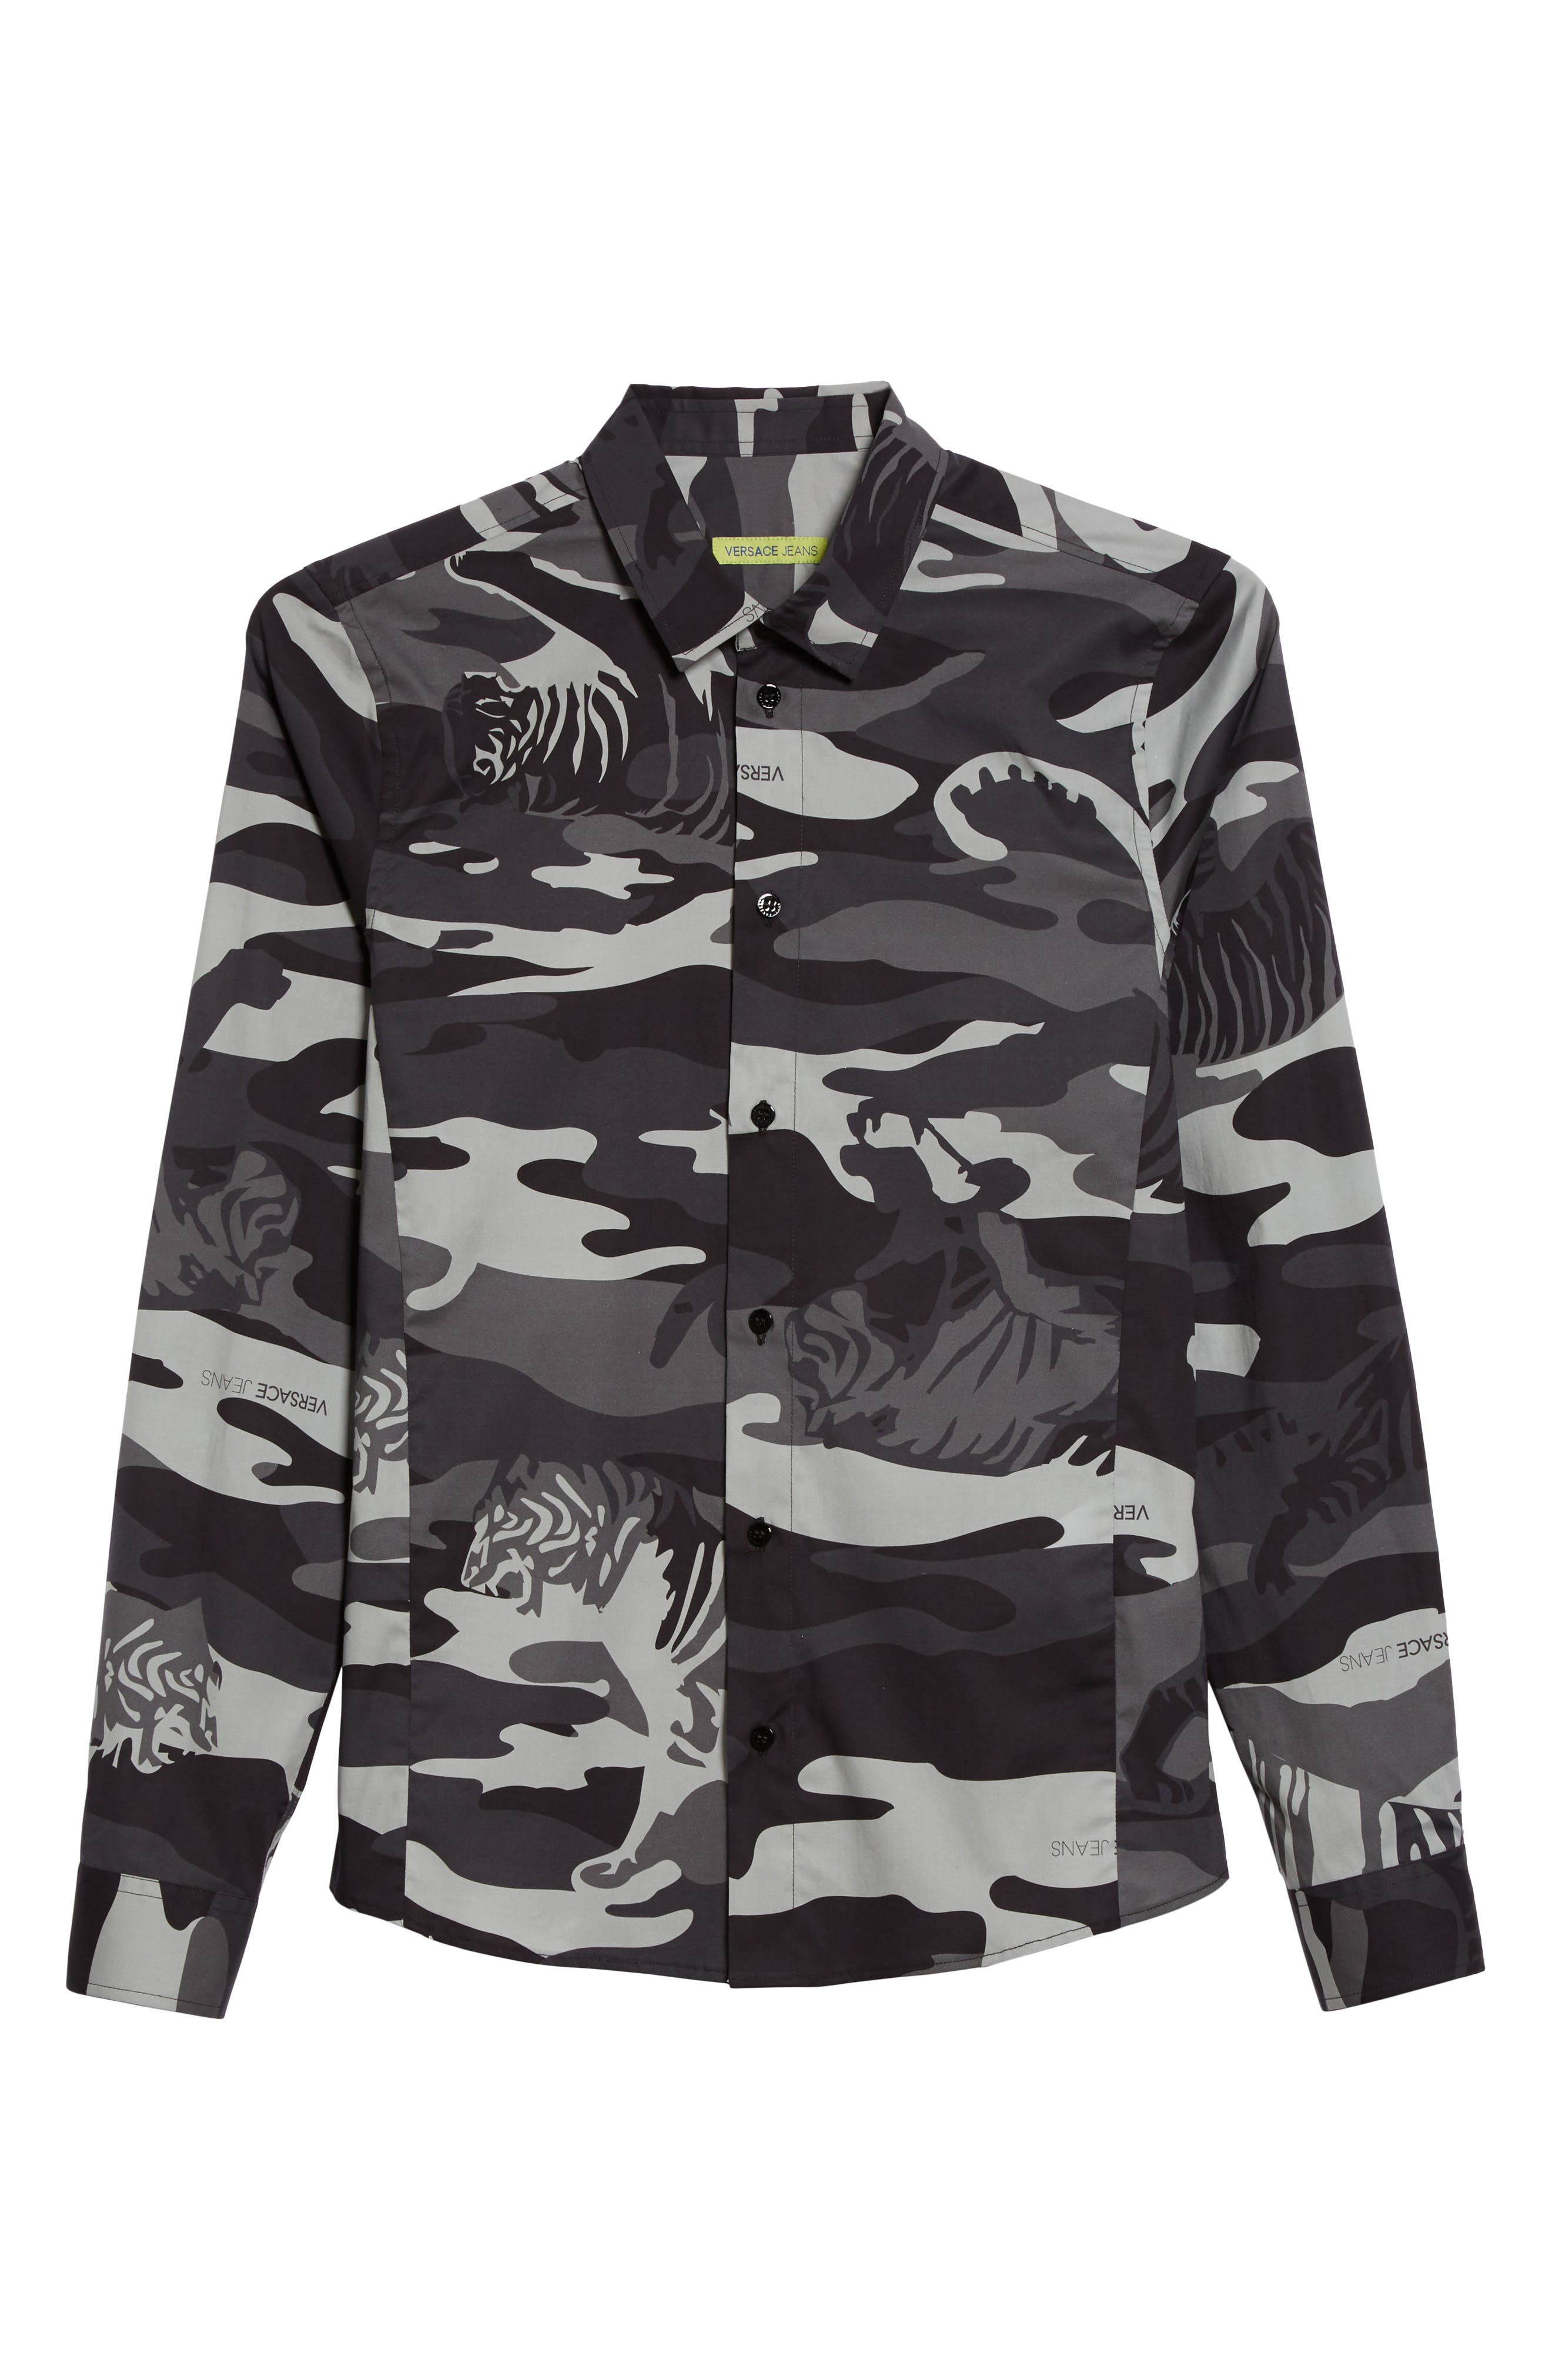 Tiger Camo Print Shirt,                             Alternate thumbnail 6, color,                             Grey